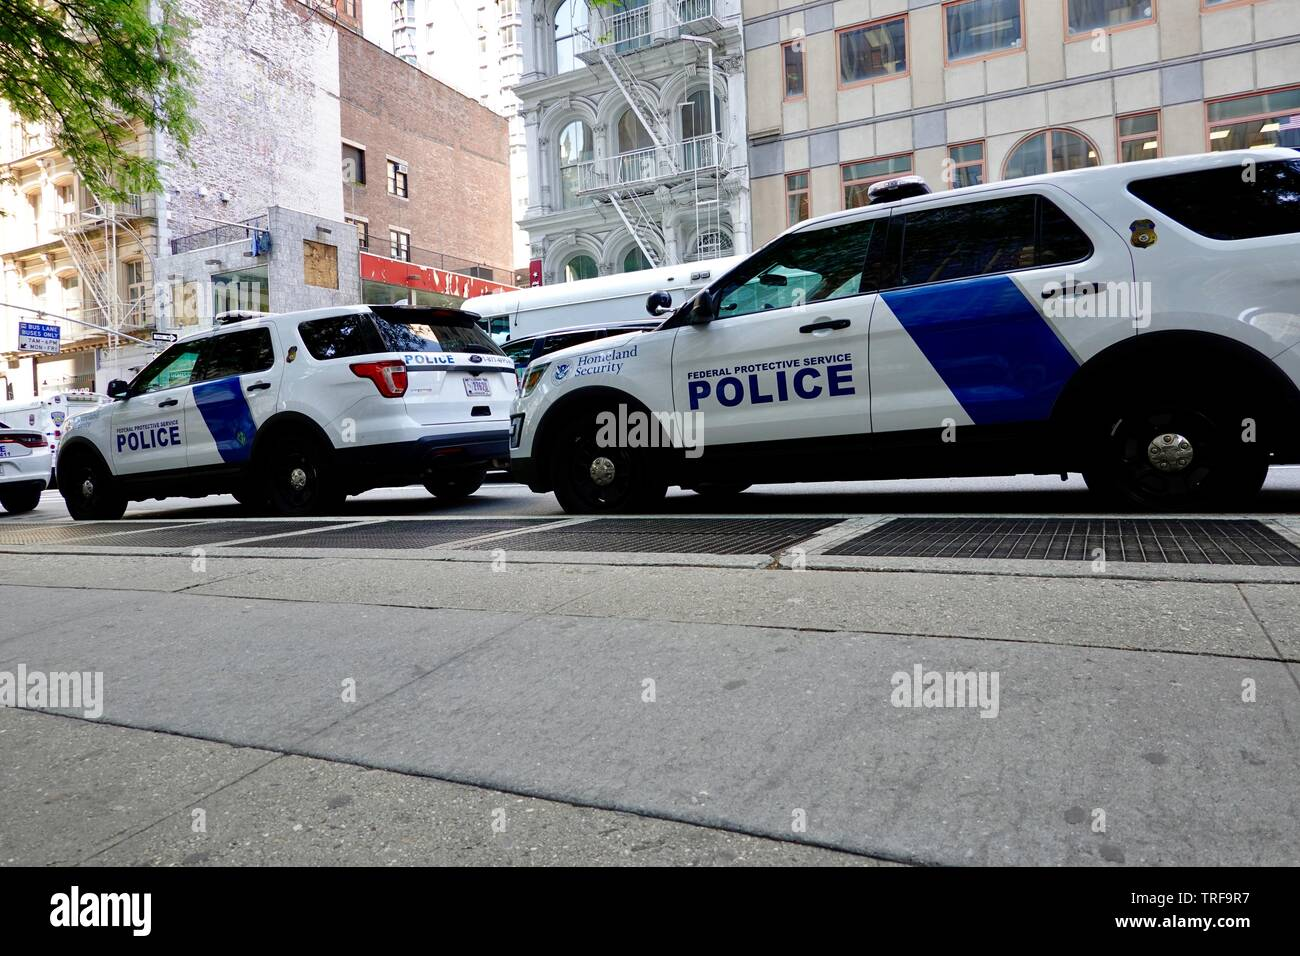 Department of Homeland Security, Federal Protective service police vehicles parked on Broadway at Federal Plaza, New York, NY, USA. Stock Photo